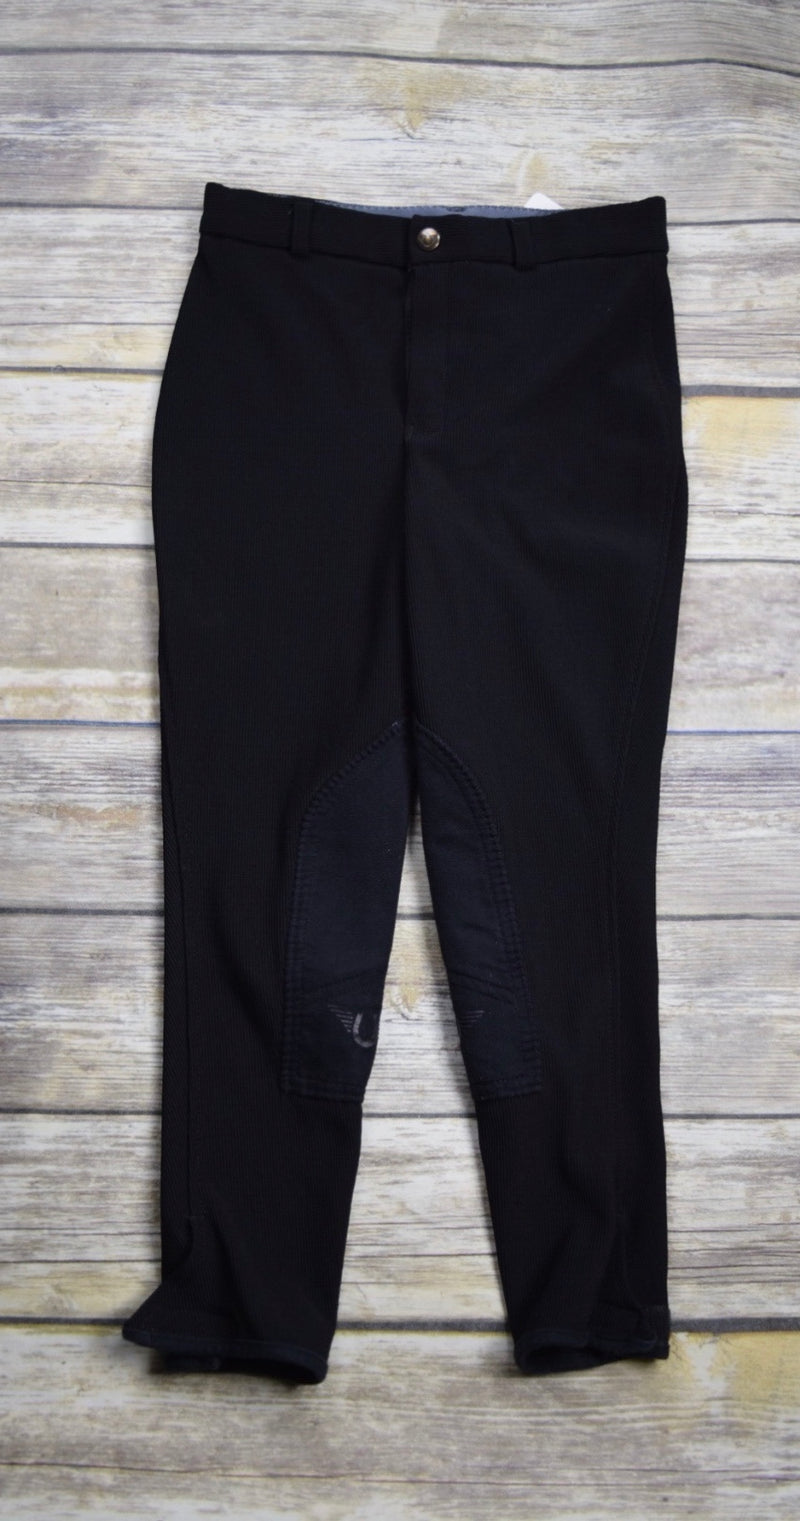 TuffRider Ribb Knee Patch Breeches in Black - Children's 10